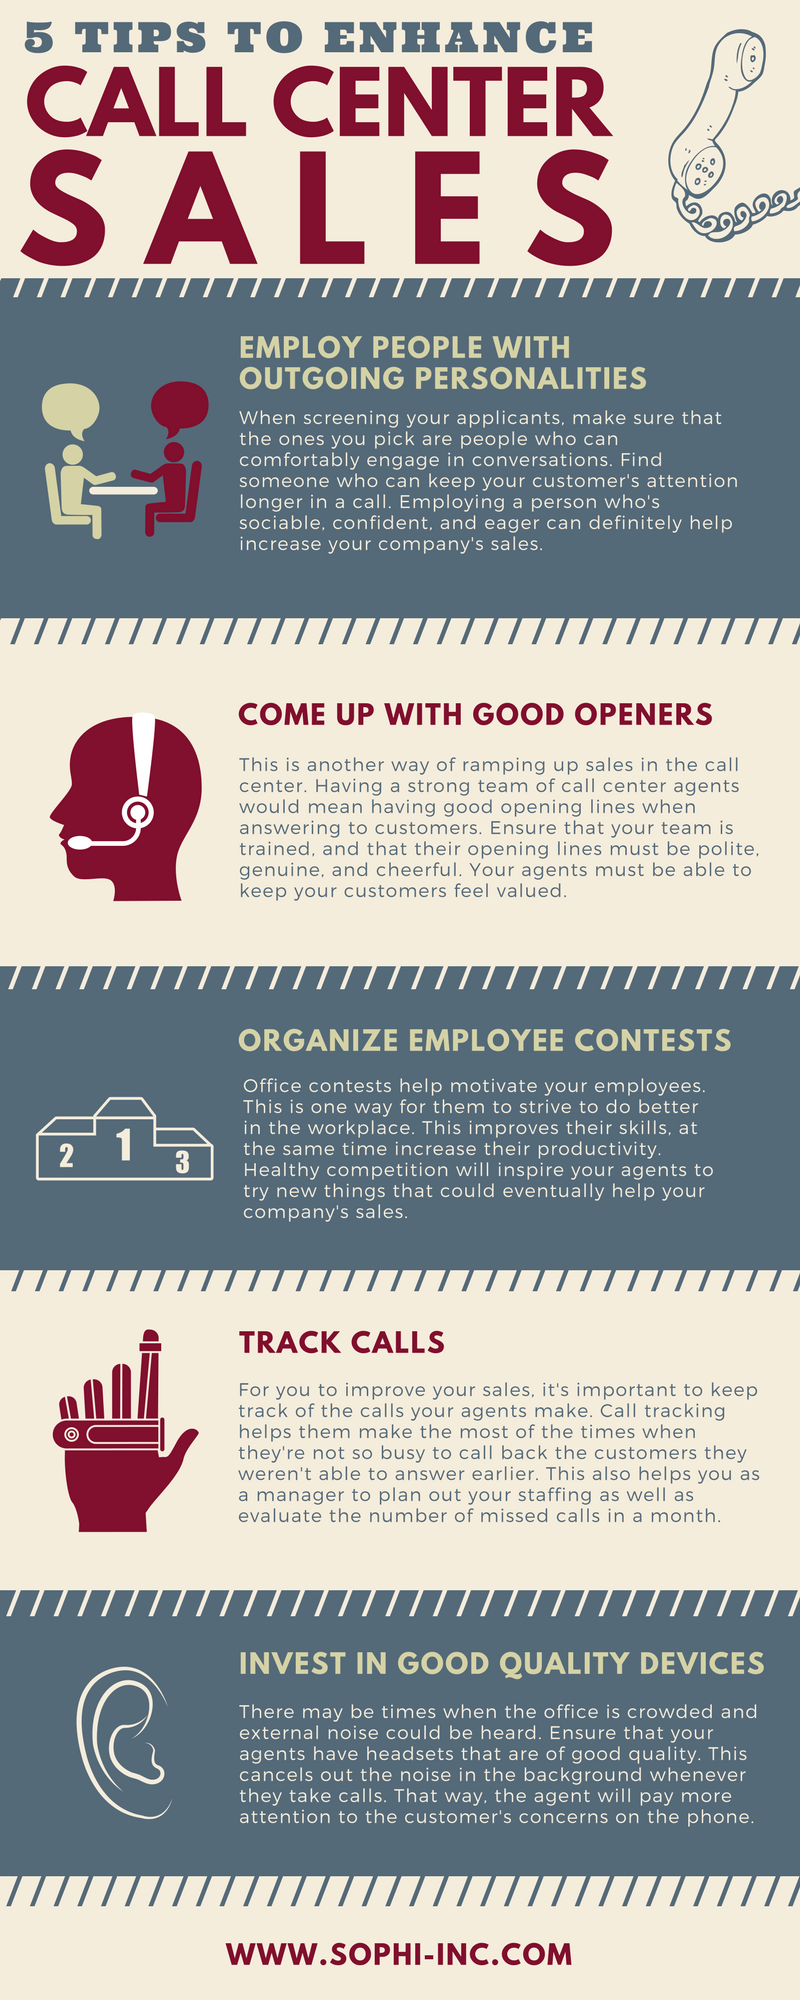 5 Tips to Enhance Call Center Sales.png